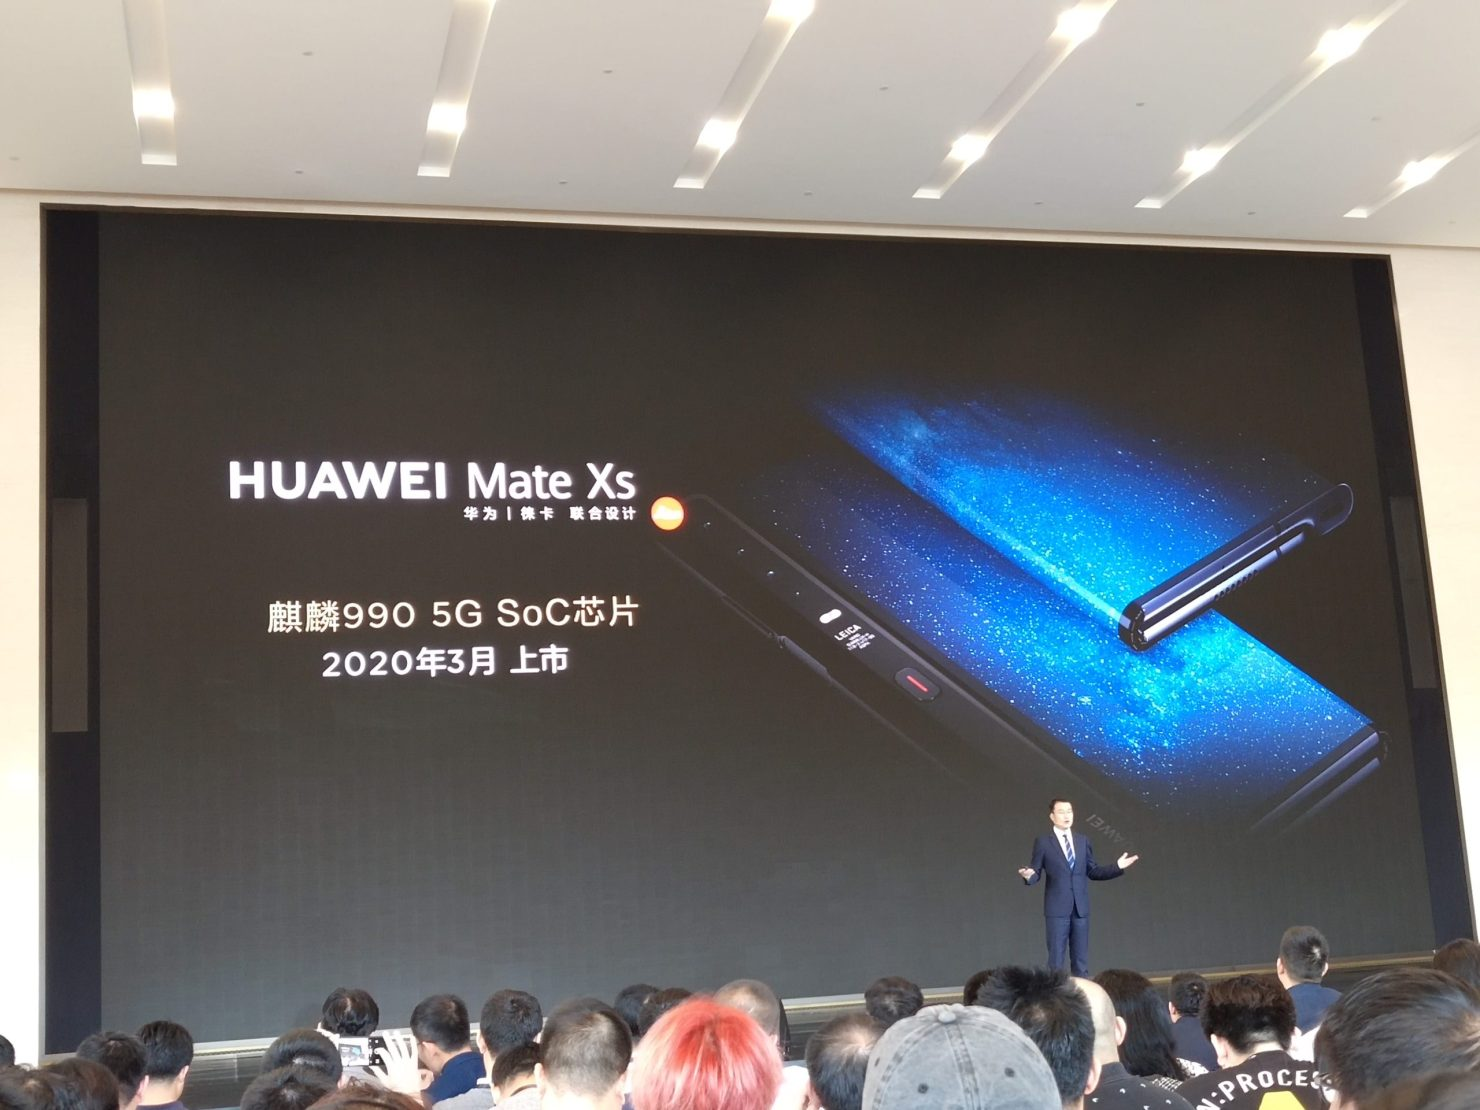 Photo of Huawei's next foldable phone Mate Xs